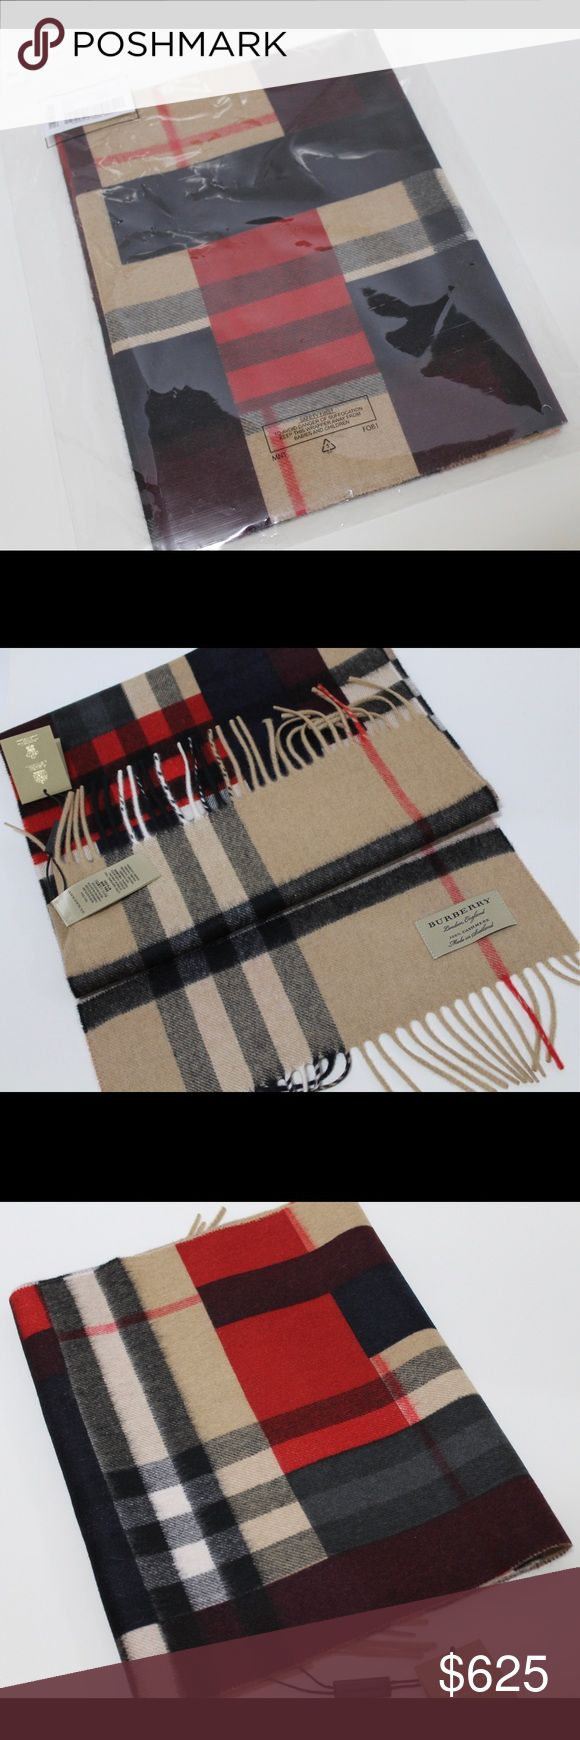 BURBERRY  CLASSIC CASHMERE SCARF IN COLOR BLOCK BURBERRY  THE CLASSIC CASHMERE SCARF IN COLOR BLOCK CHECH    Color: Parade Red  Style: 4026042 1  Retail: $ 650.00    The Classic Cashmere Scarf in check with colour block print is made at a 200-year-old mill in the Scottish countryside. Using 30 different steps, the scarf is woven on traditional looms.    168 x 30cm/66.1 x 11.8in  100% cashmere  Rectangular  Fringing at both ends  Specialist dry clean  Made in Scotland Burberry Accessories…